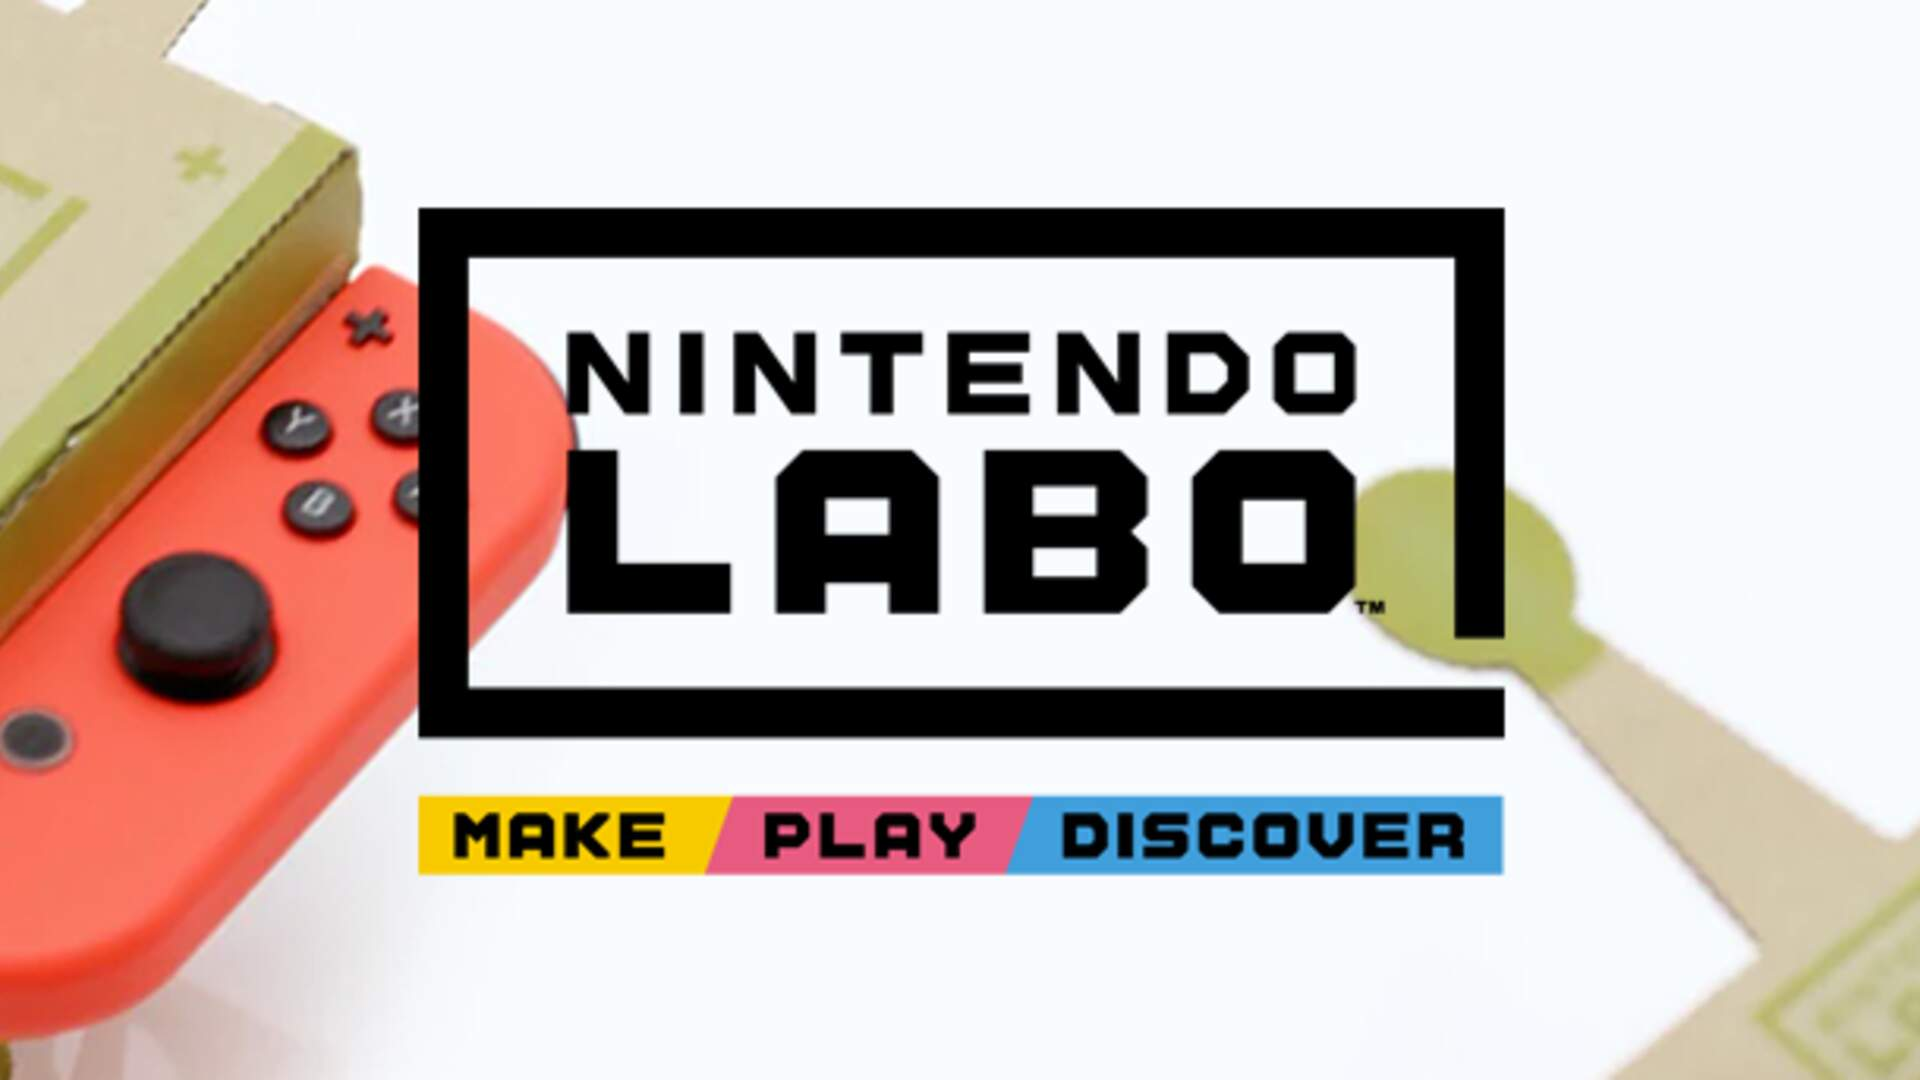 Nintendo Labo's Price Might be Too High for the Mainstream Audience It's Trying to Attract